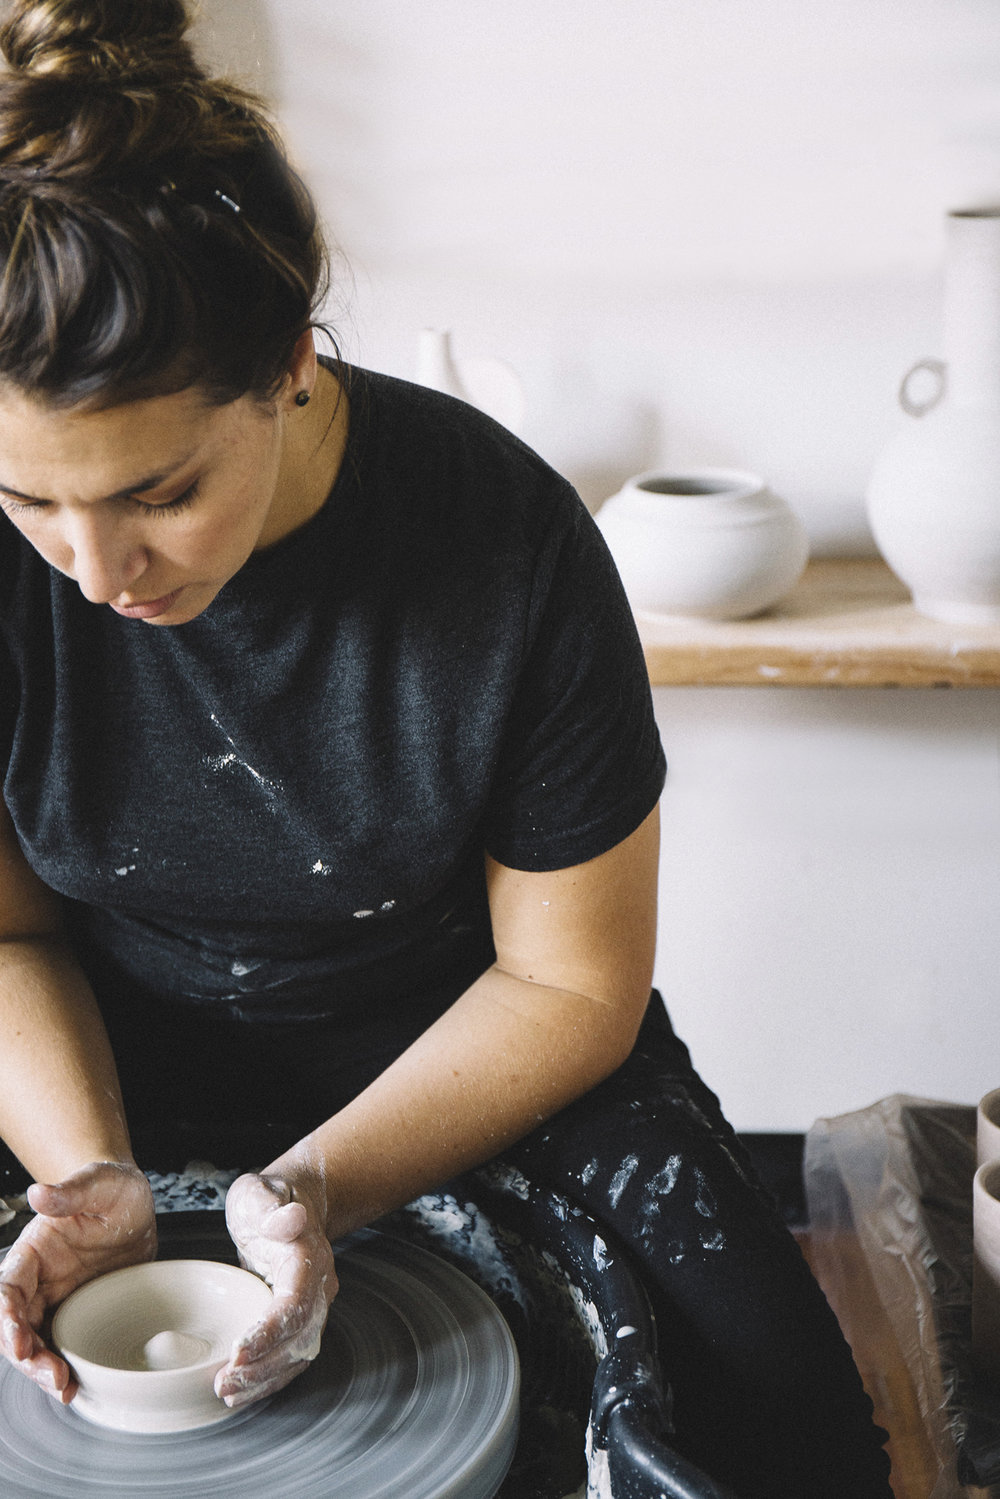 CAMPFIRE STUDIO - --Meet potter, gal pal, and boss babe Kristen Camp.Kristen is the Founder + Design Director of Campfire Studio; a contemporary ceramic and floral studio. The studio is located in a historic brick mill building in Westbrook, ME. Originally a Georgia native, Kristen and her husband have crafted a new life in Maine and have become widely known for their unique product assortment,high-end housewares, one-of-a-kind Raku designs,and sweet Southern charm.